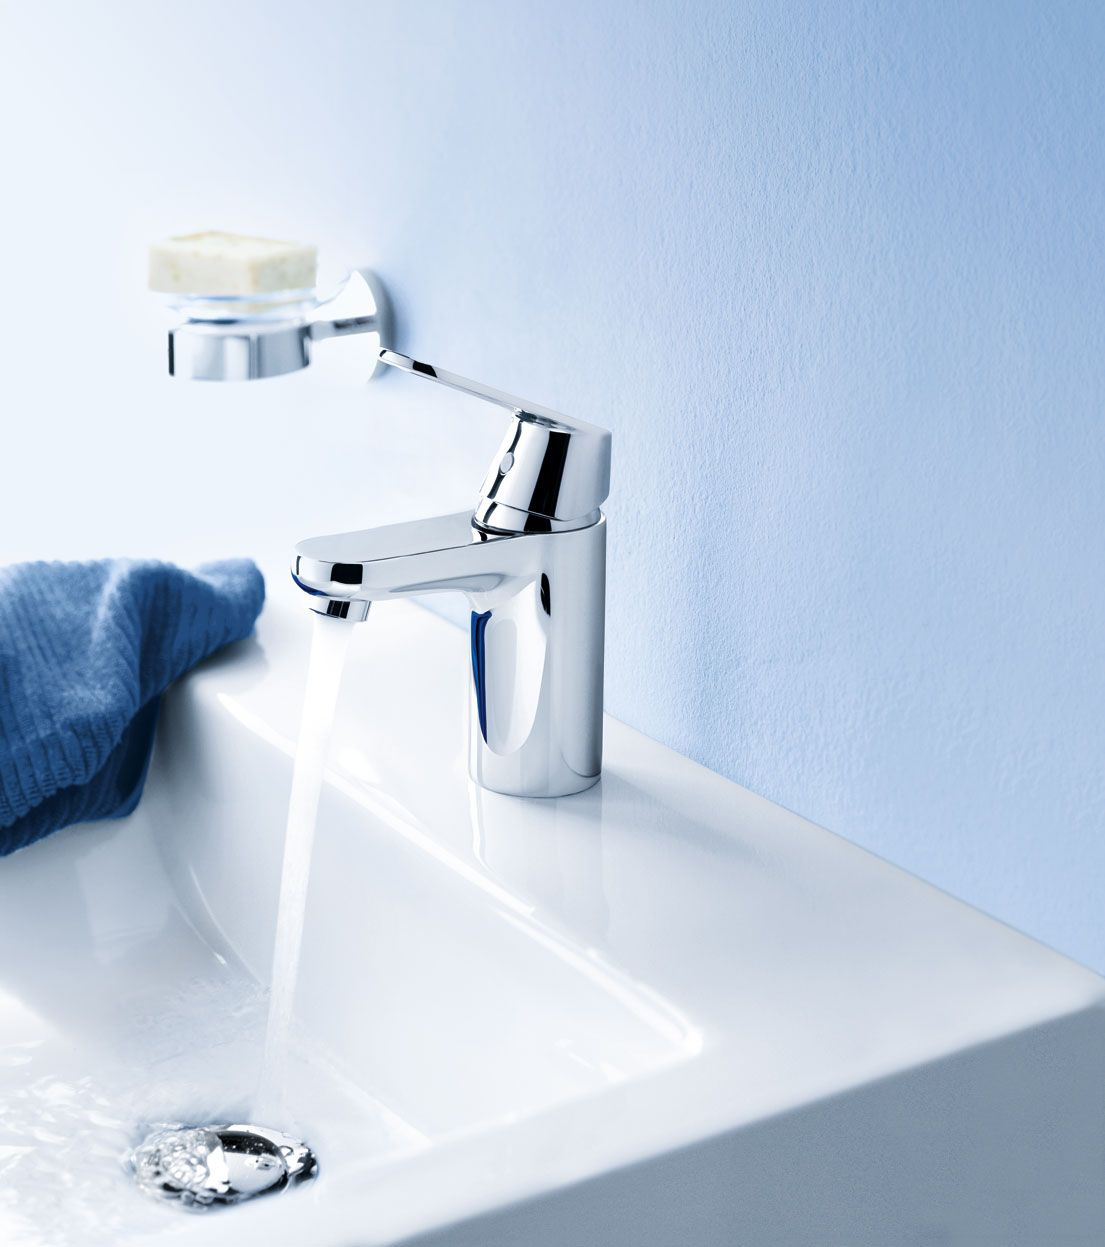 Grohe bathroom accessories - Grohe Eurosmart Cosmopolitan Bathroom Faucet